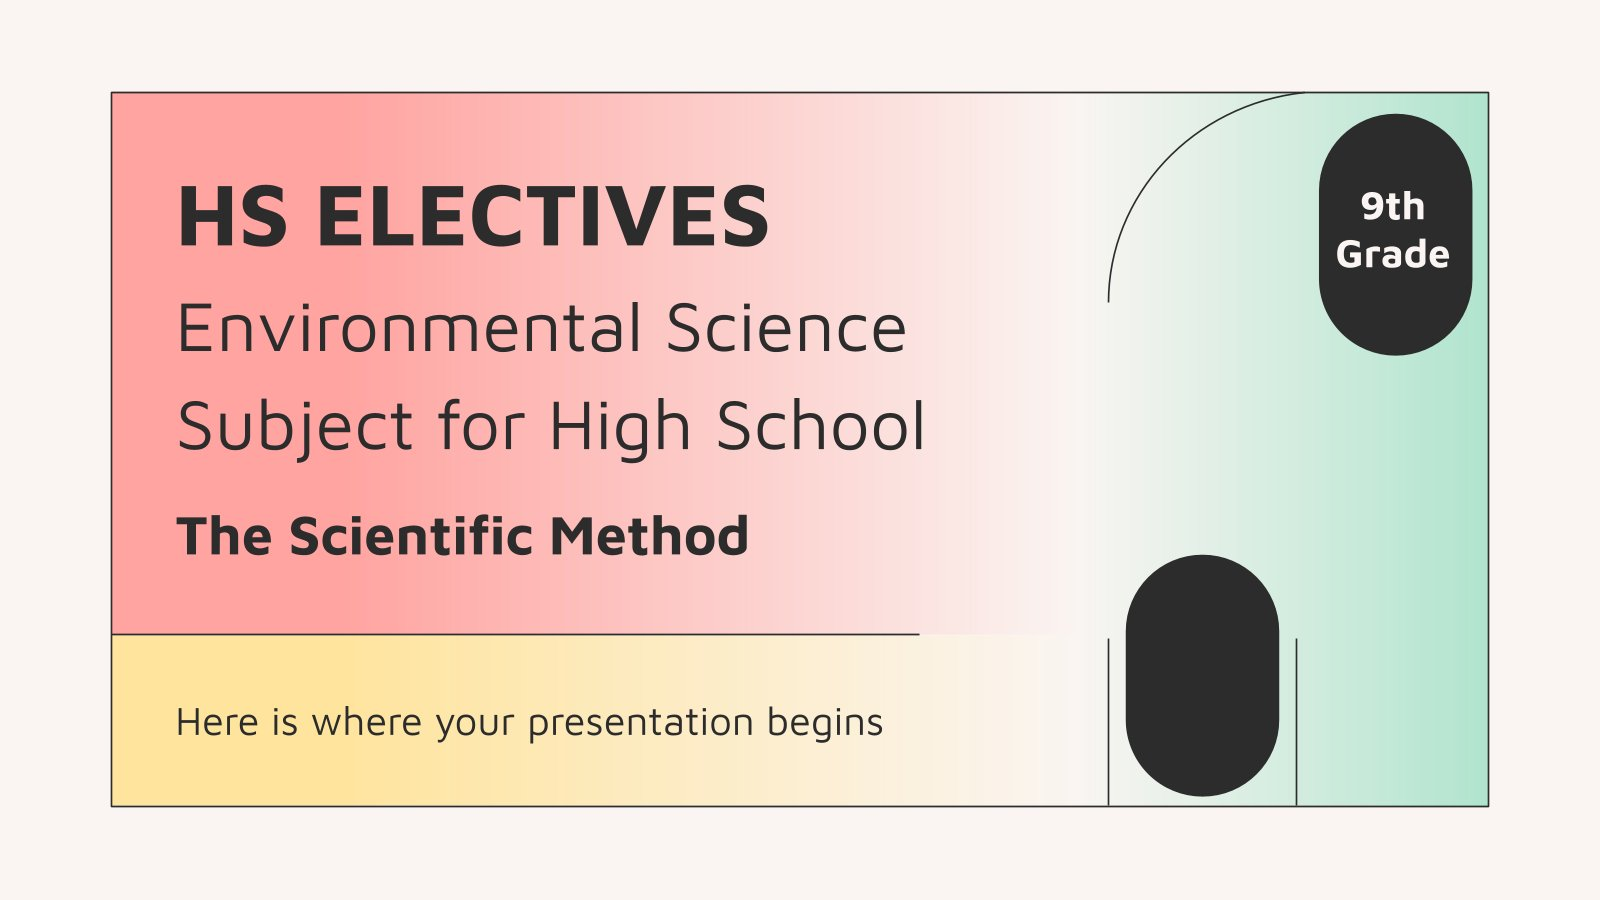 HS Electives: Environmental Science Subject for High School - 9th Grade: The Scientific Method presentation template